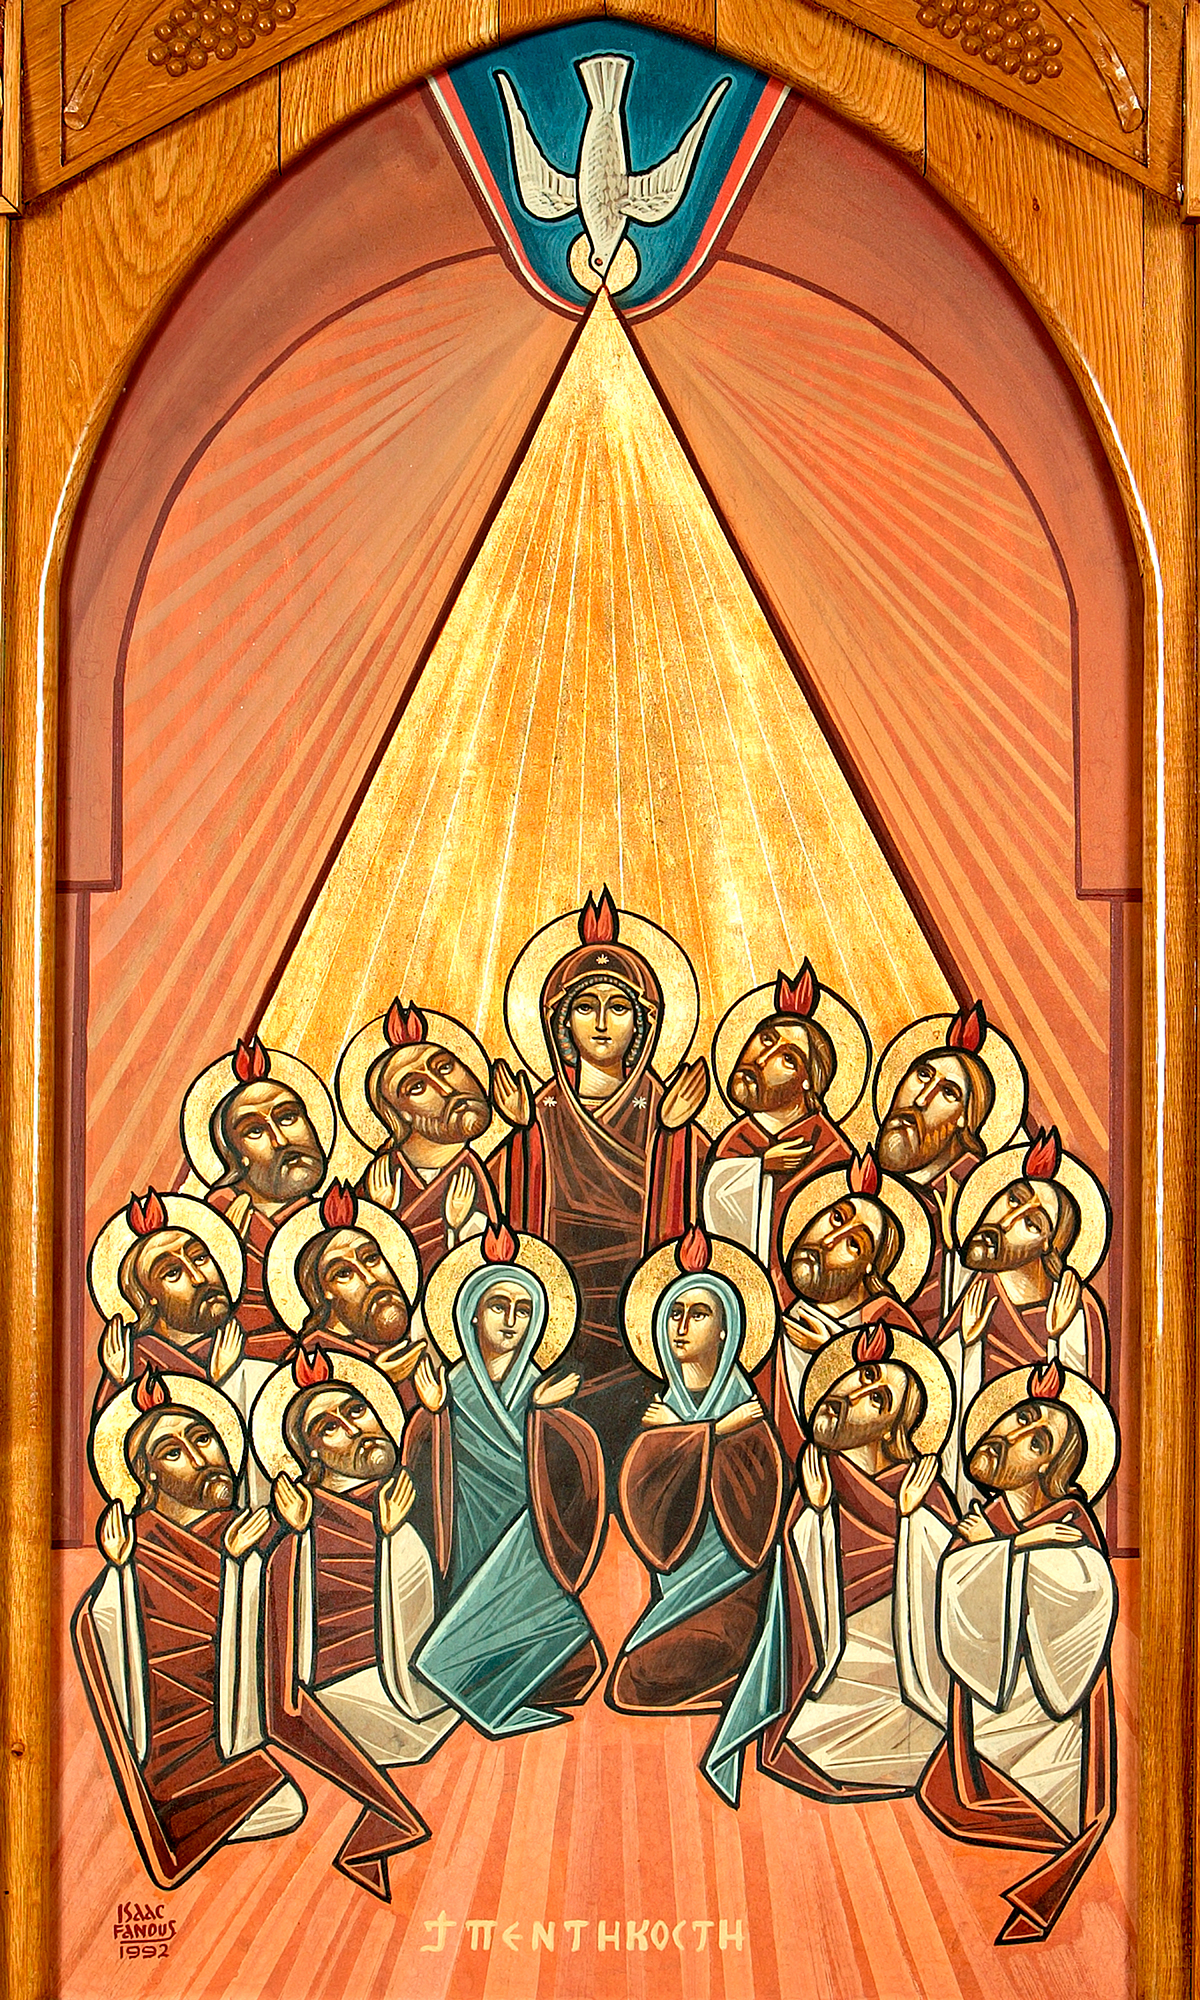 Pentacost: Descent of the Holy Spirit on the Apostles